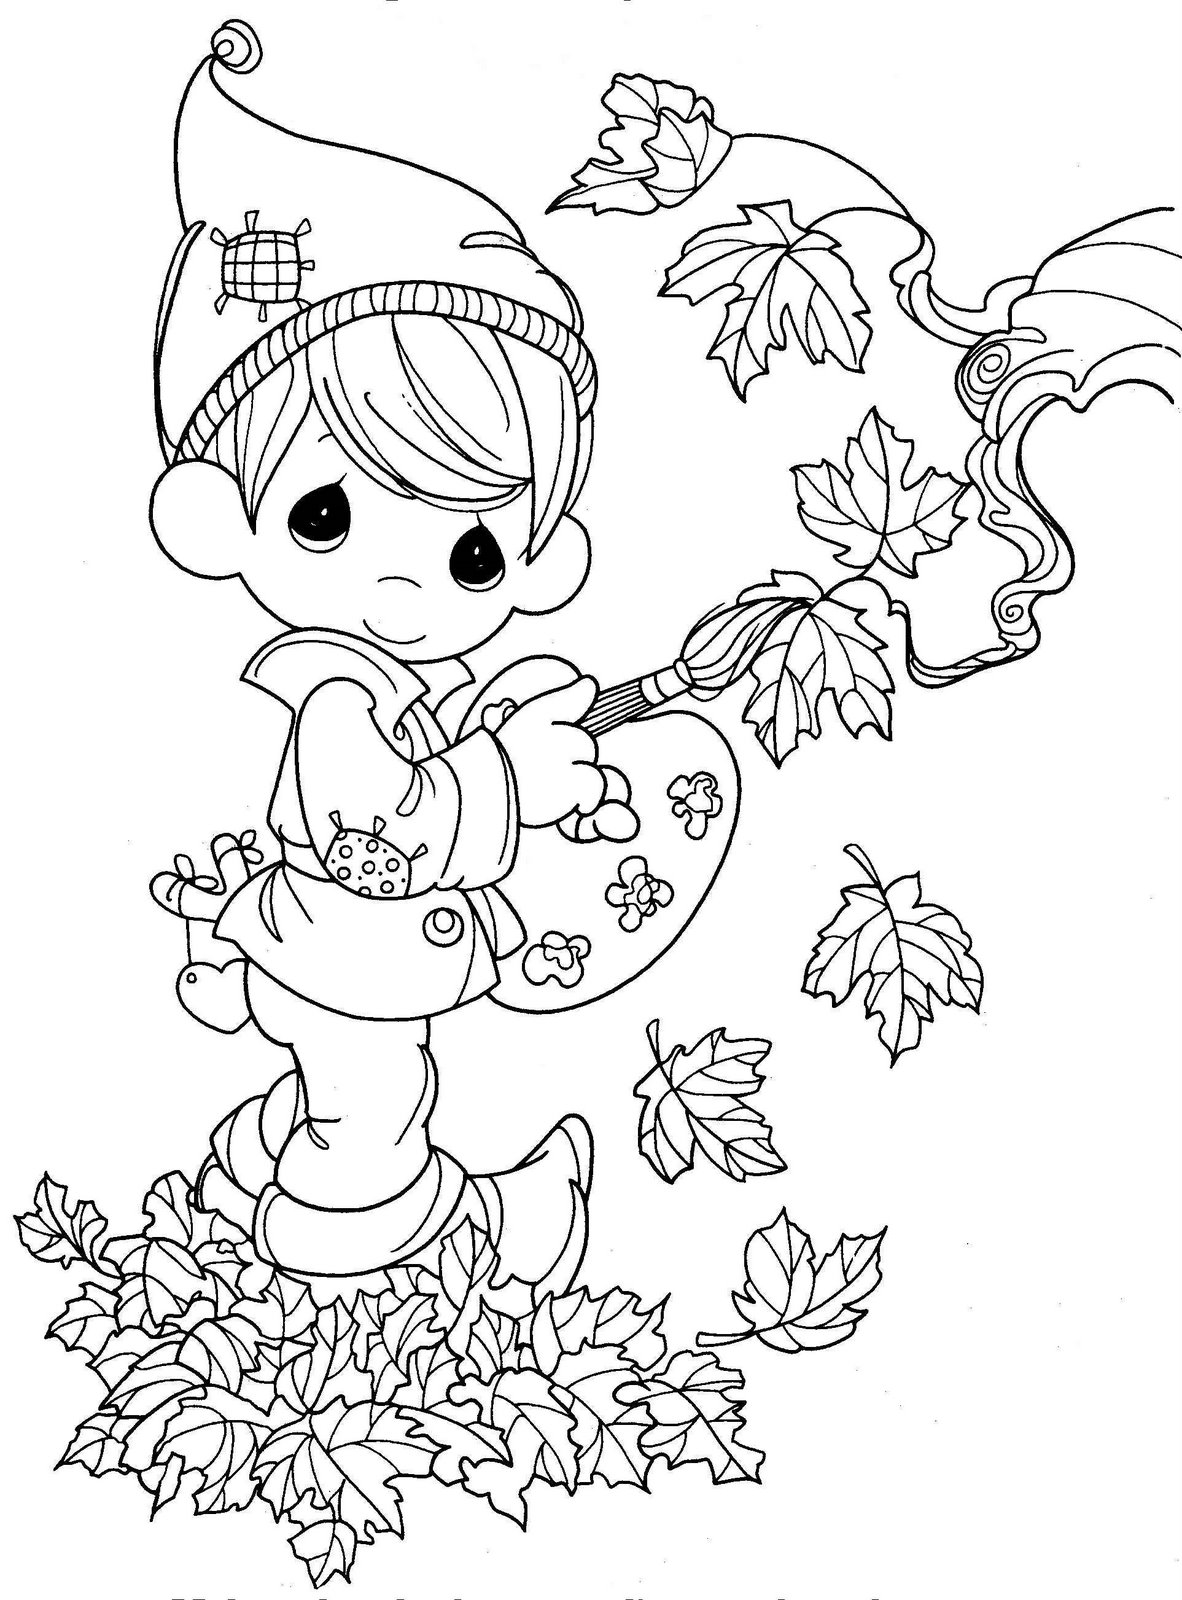 kid printables coloring pages - photo#21